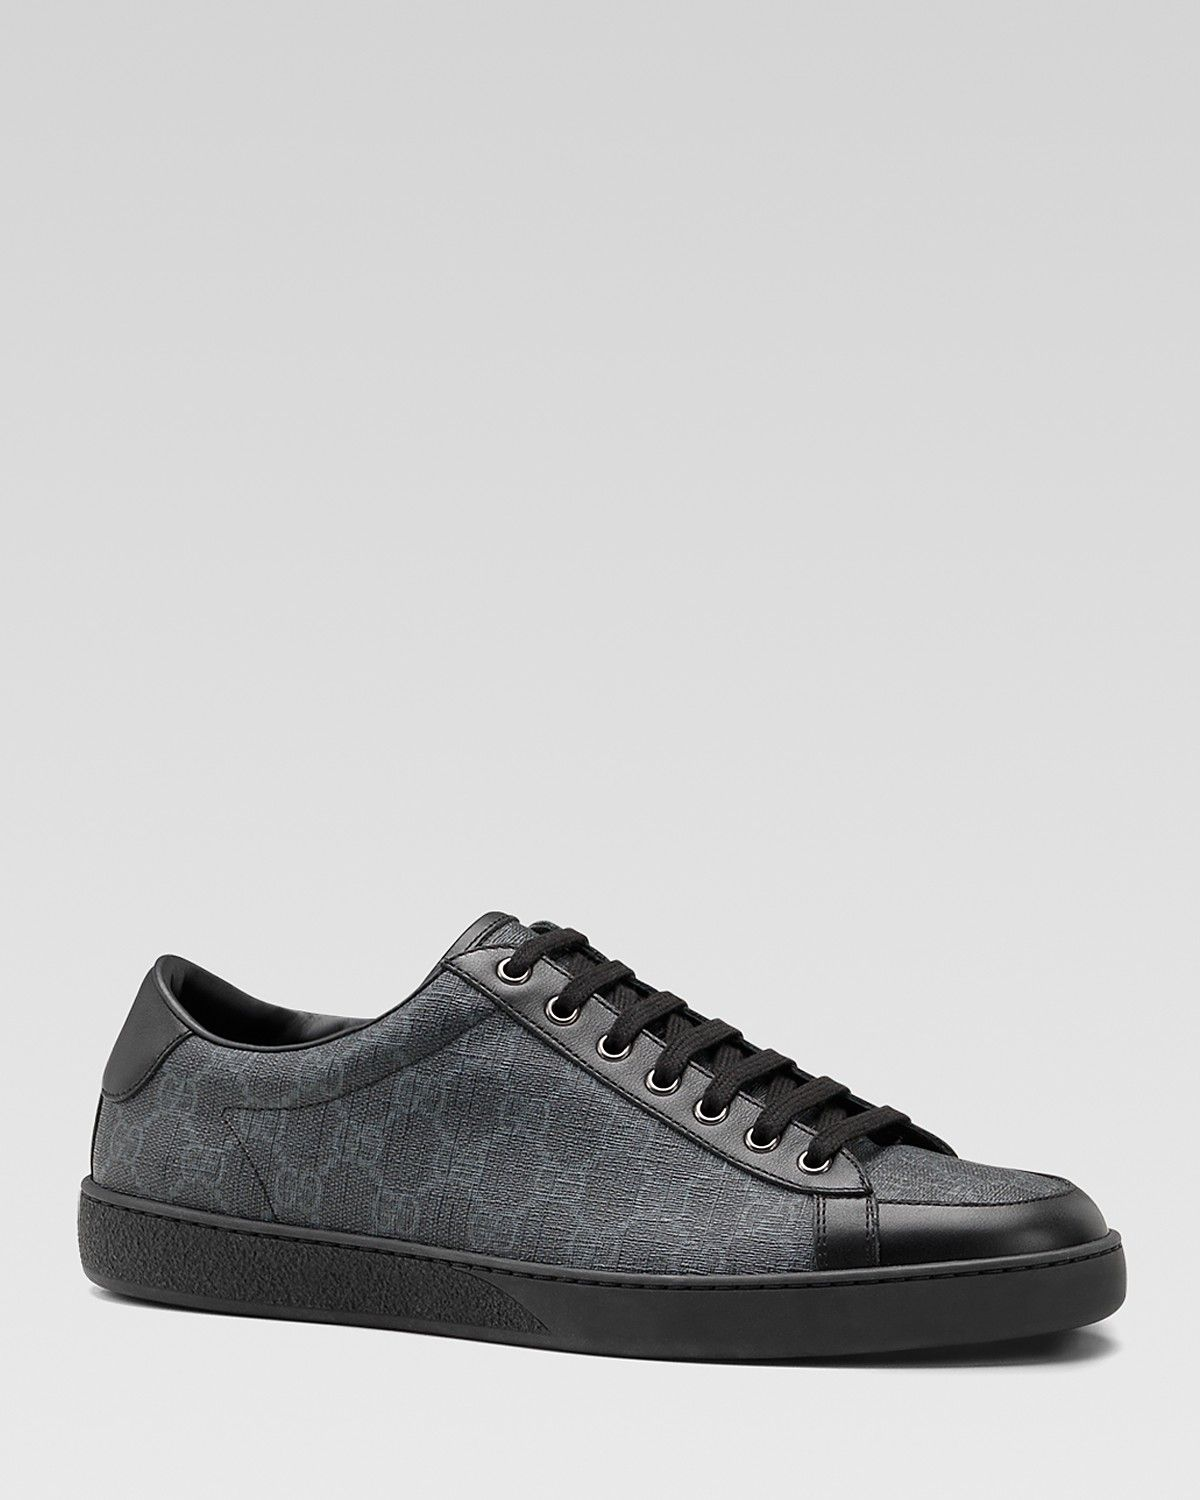 039bca784d455f Gucci Brooklyn GG Supreme Canvas Lace-Up Sneakers Gucci Men, All Black  Sneakers,